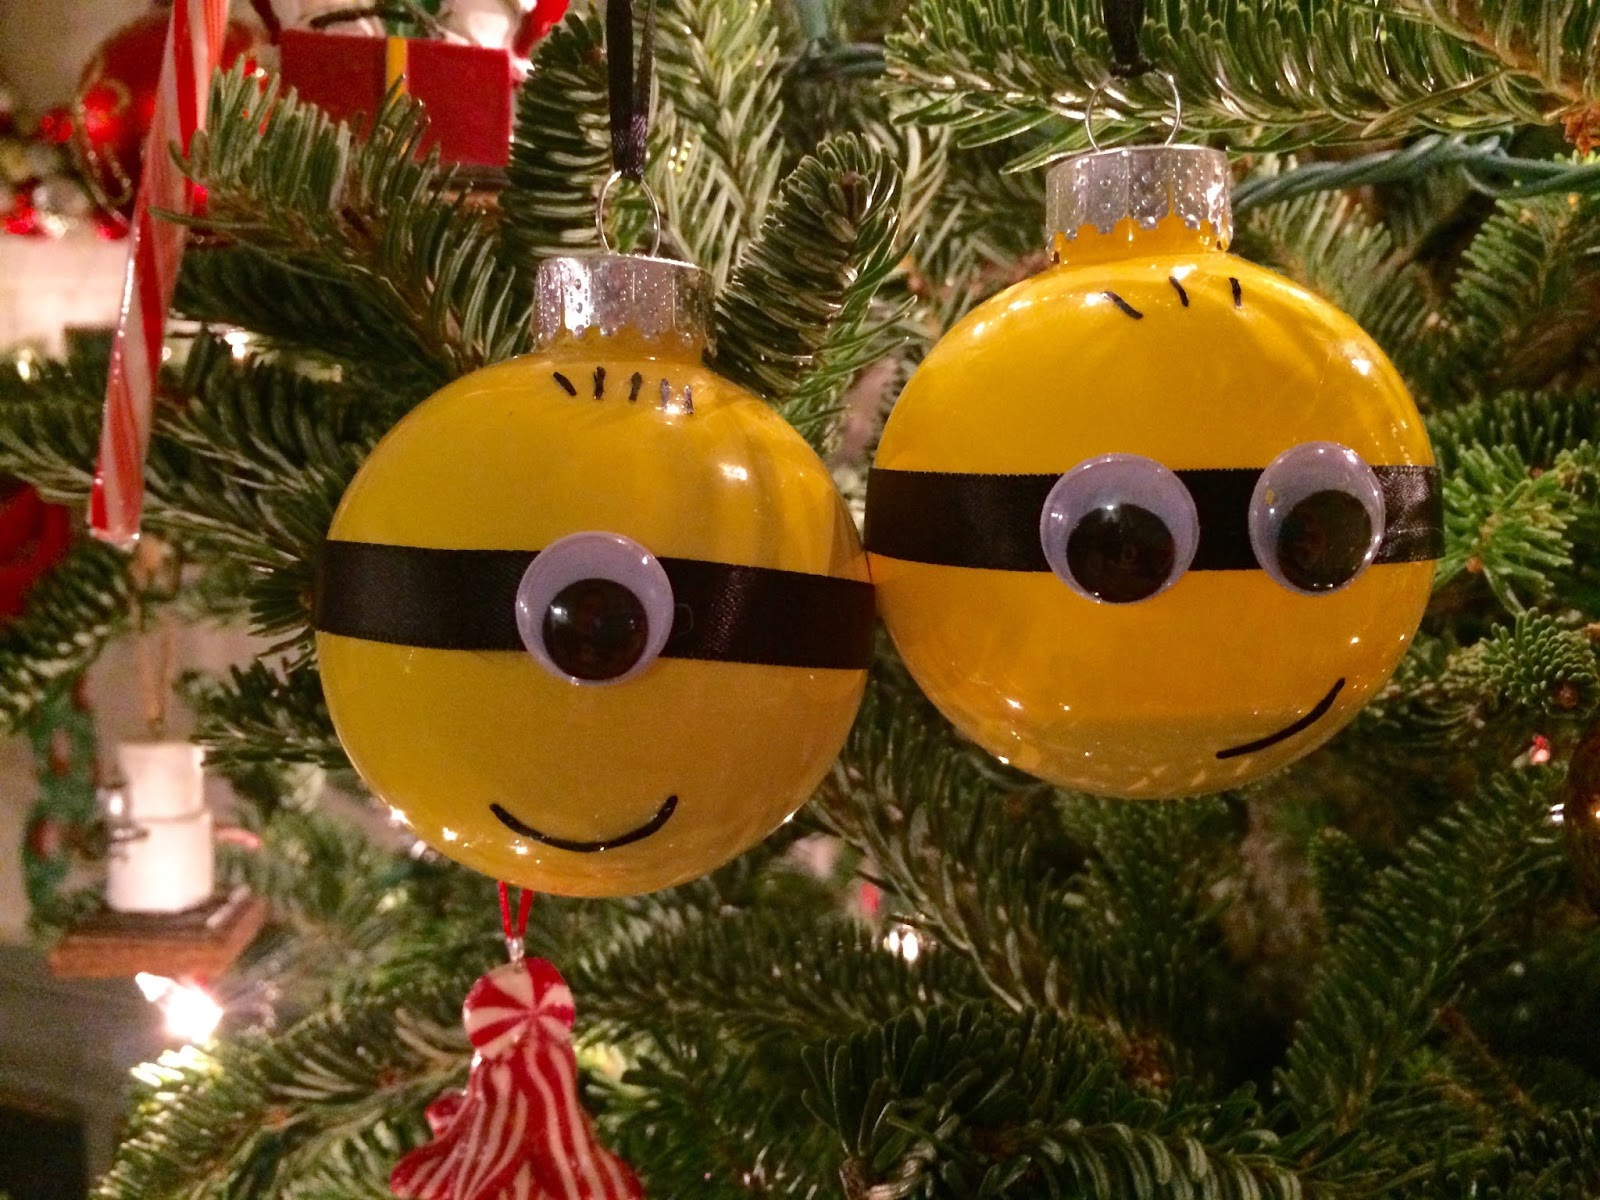 my boys loved the ornaments and they are excited to pull them out every year to add to our tree